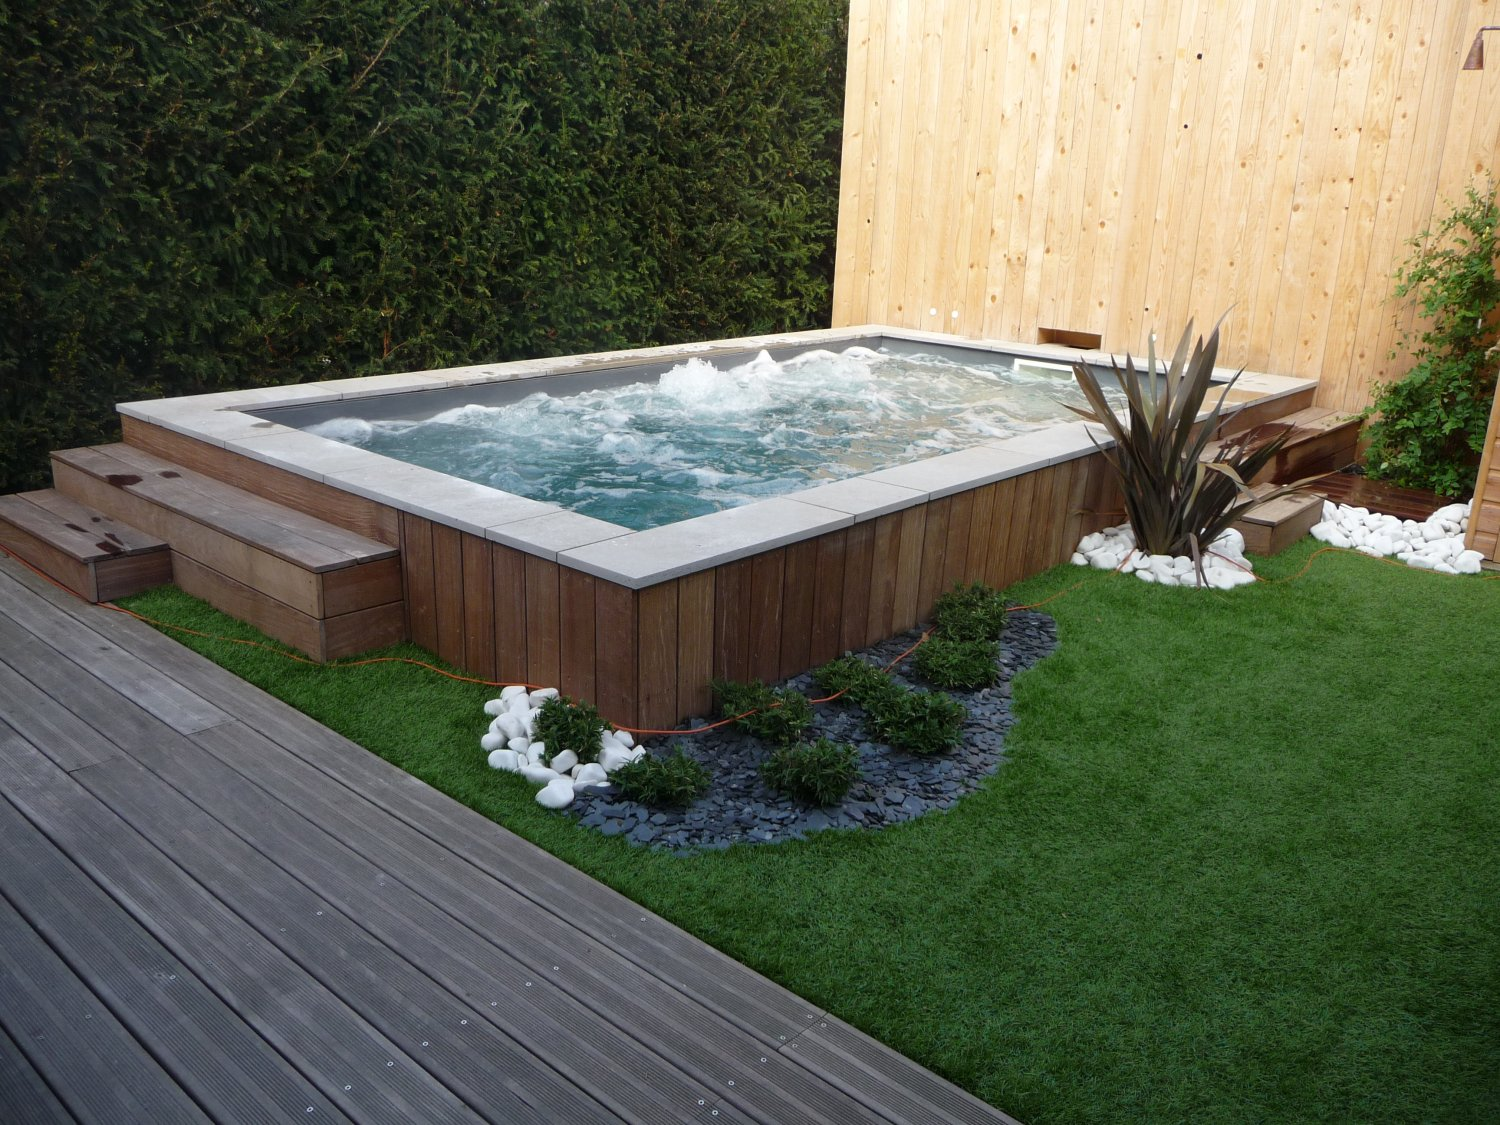 Am nager son jardin ext rieur faire une terrasse en bois for Amenager son jardin de ville